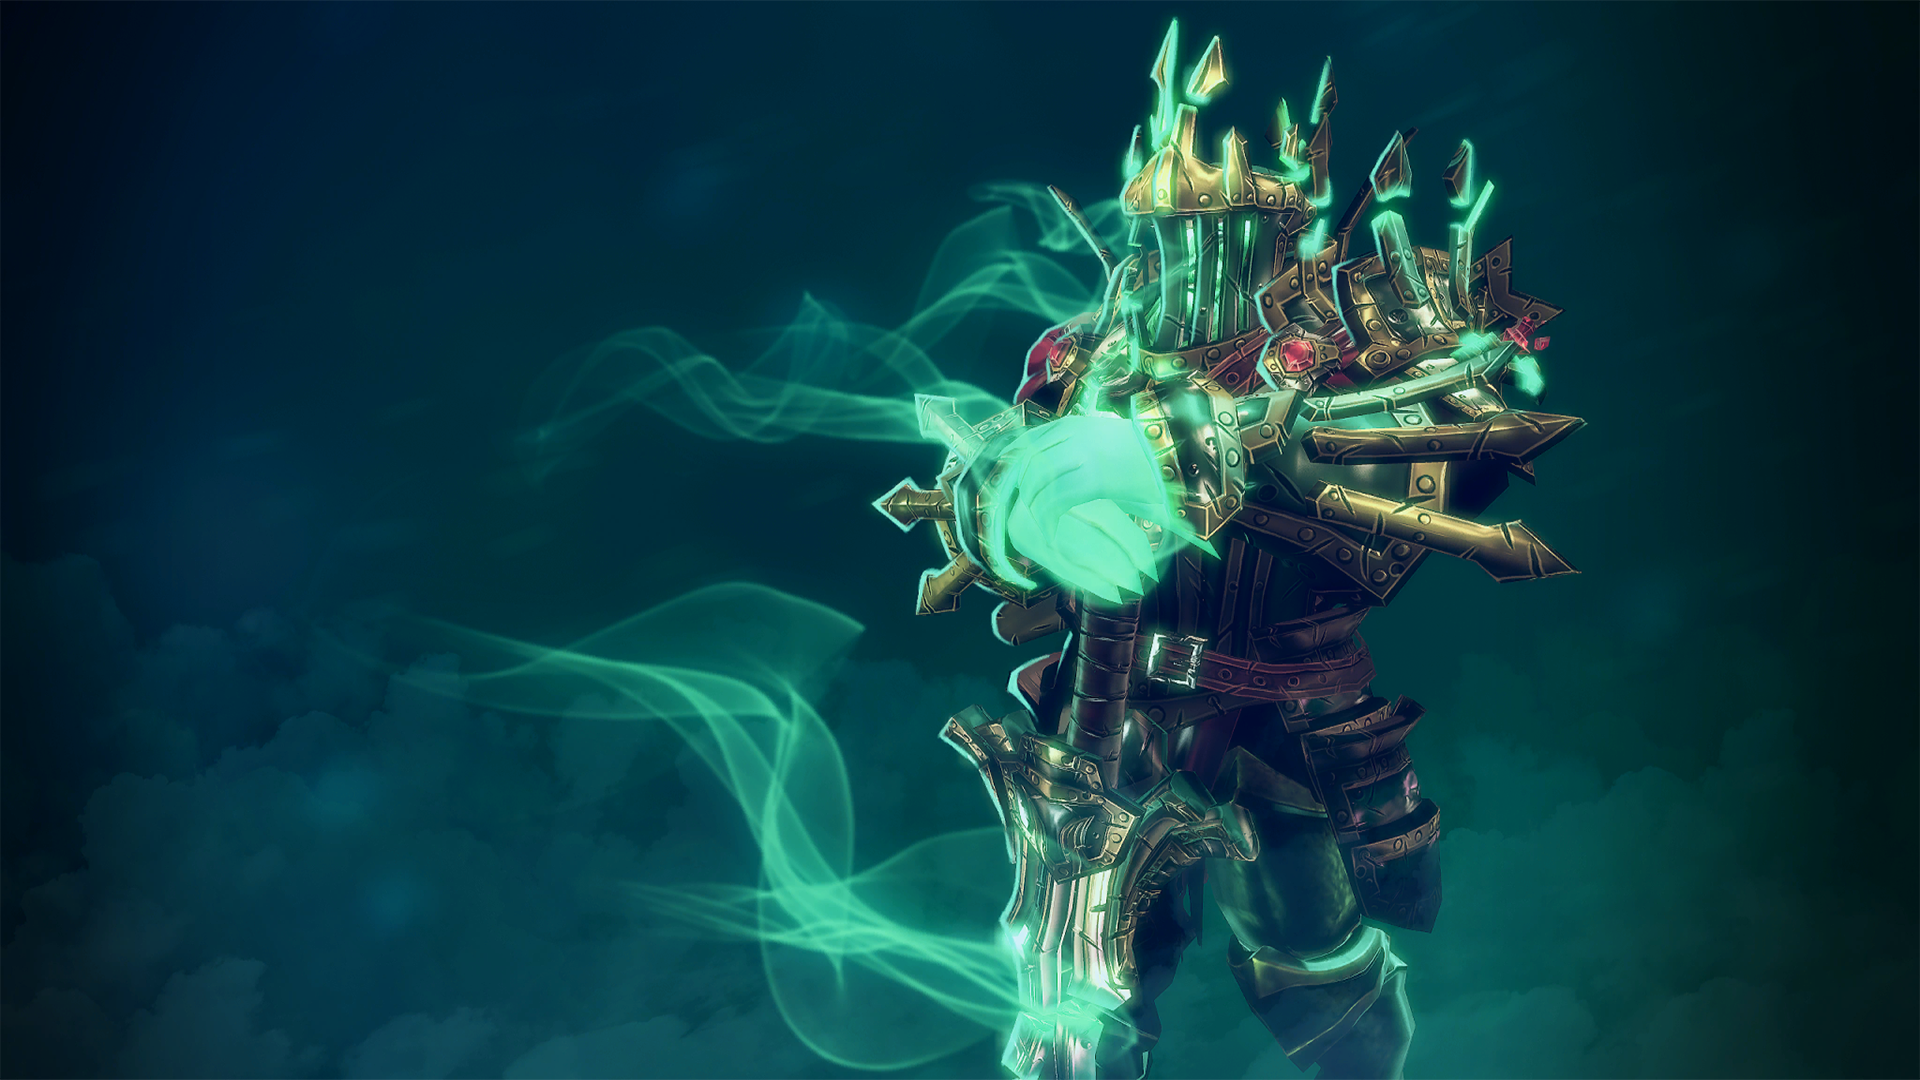 Download hd wallpapers of 133509-Dota 2, Wraith King. Free download ...